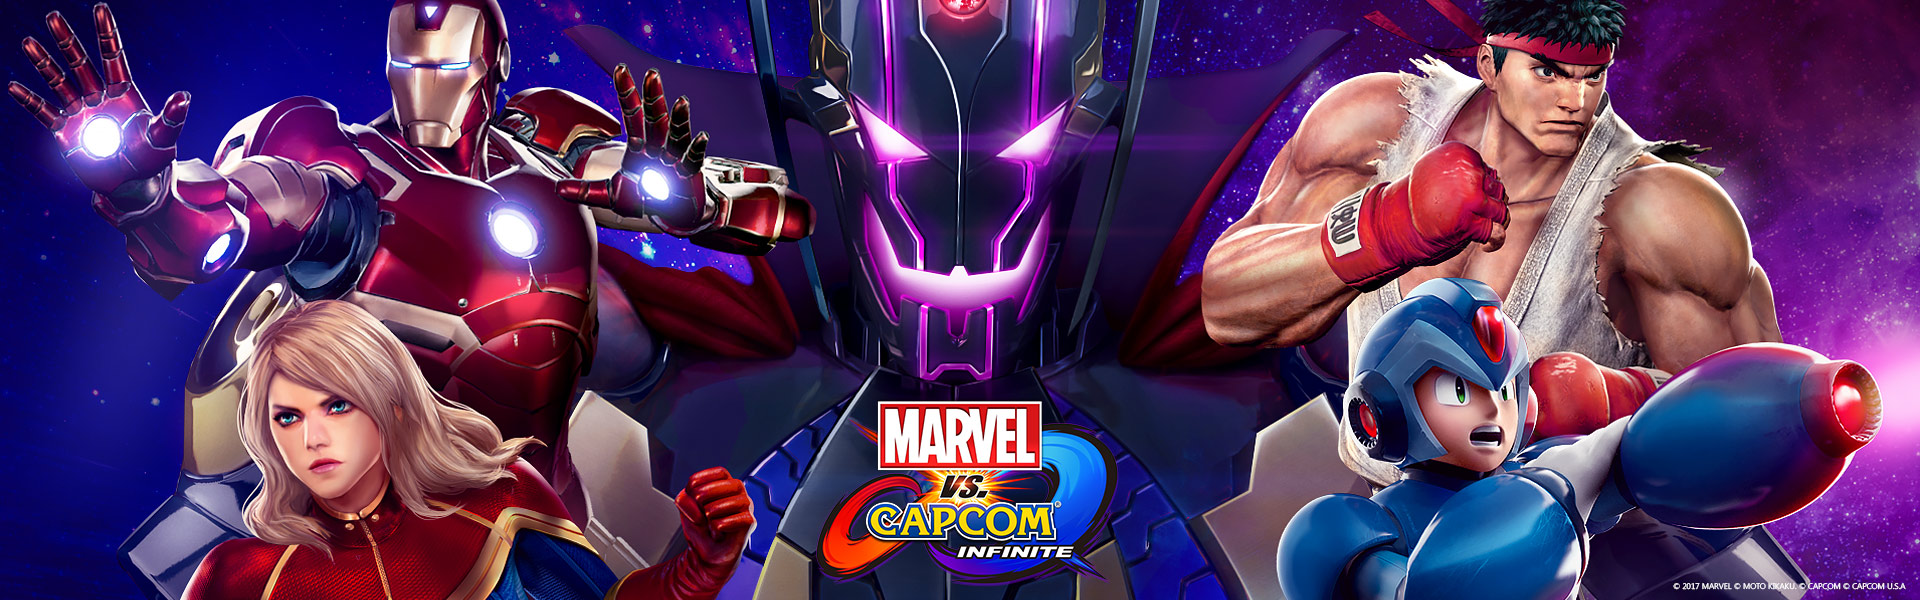 Marvel Vs Capcom Infinite Xbox